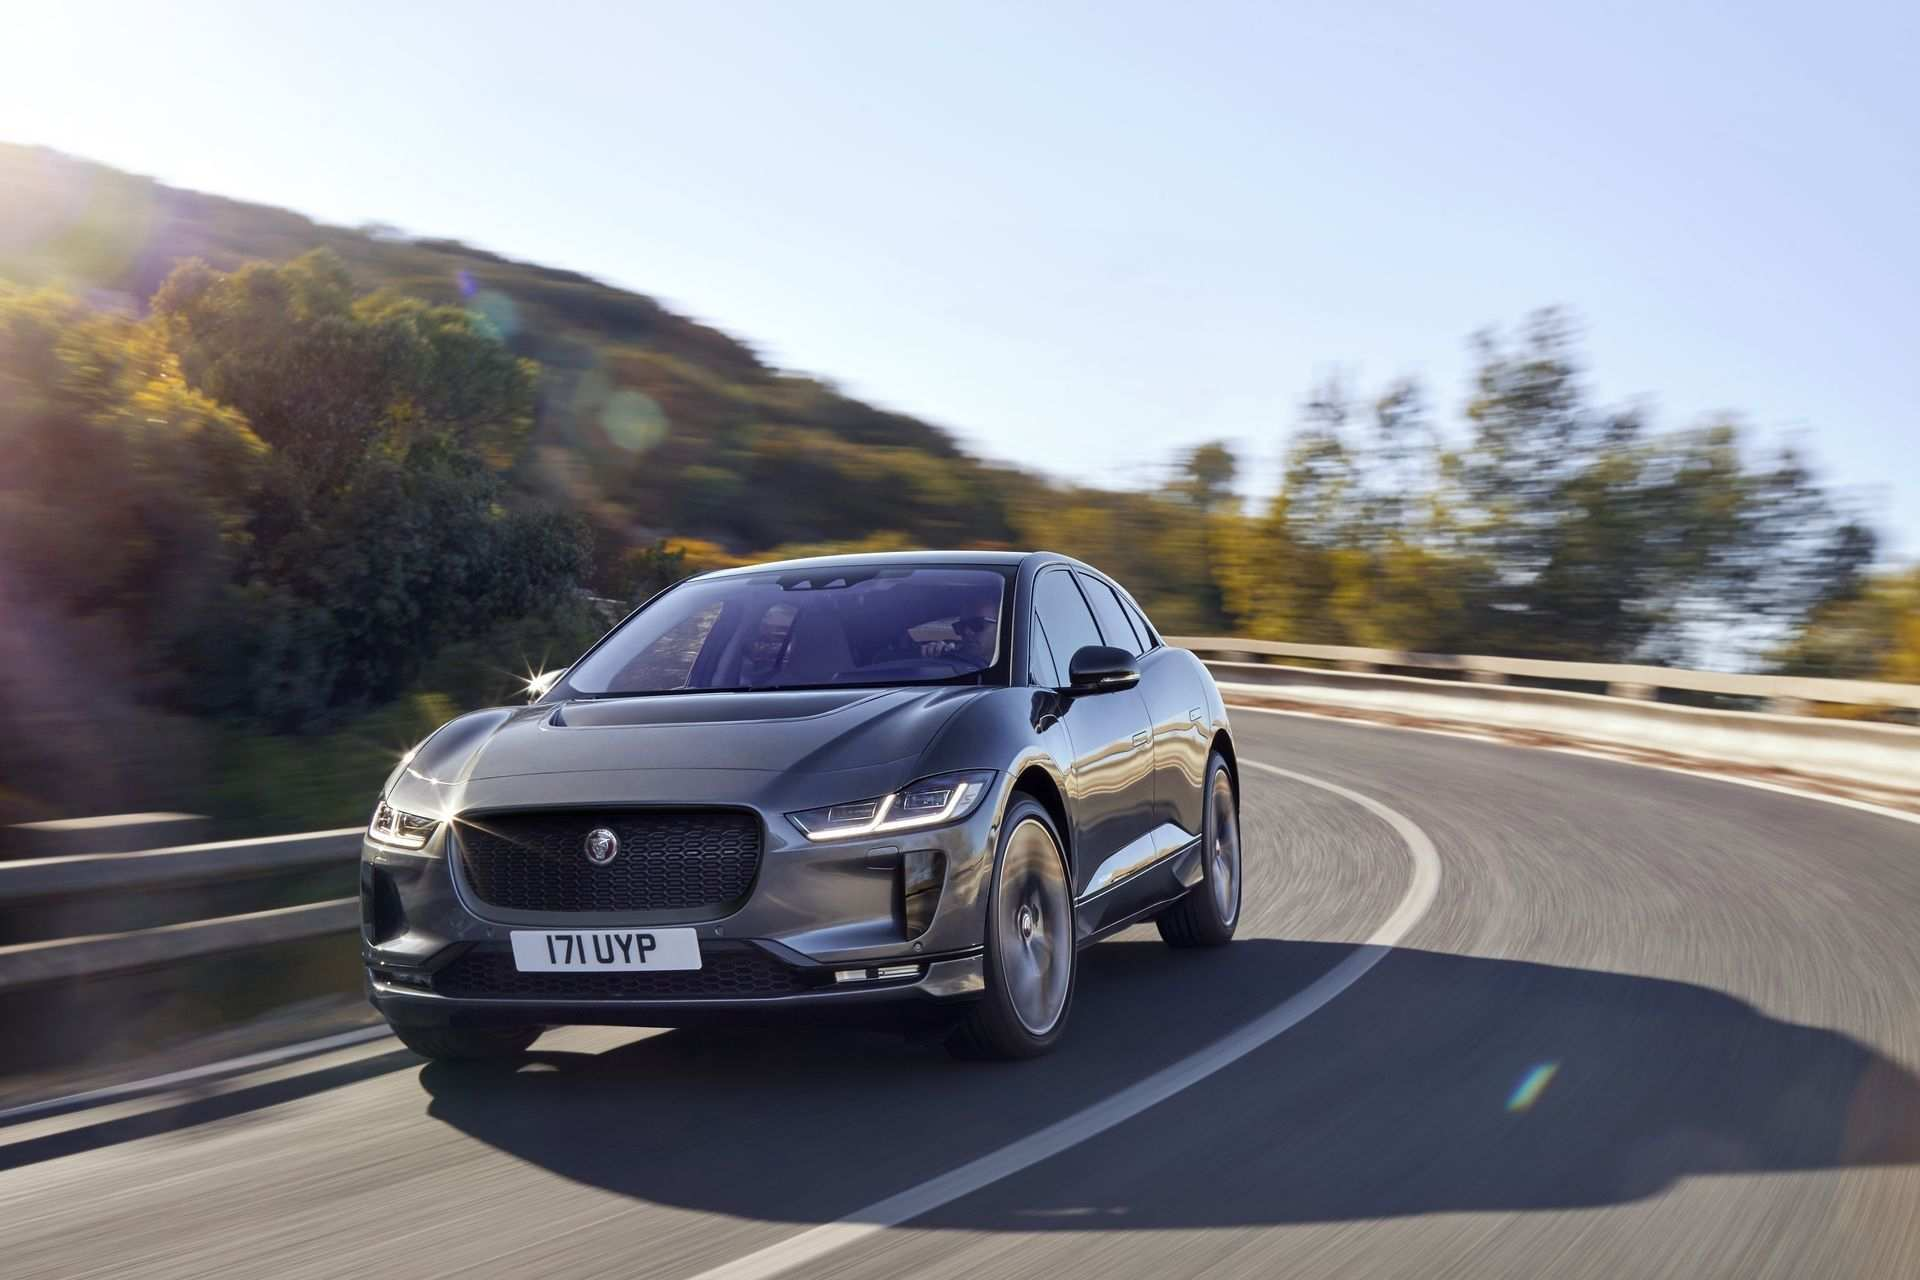 59 Best Review 2020 Jaguar I Pace Exterior Pricing with 2020 Jaguar I Pace Exterior